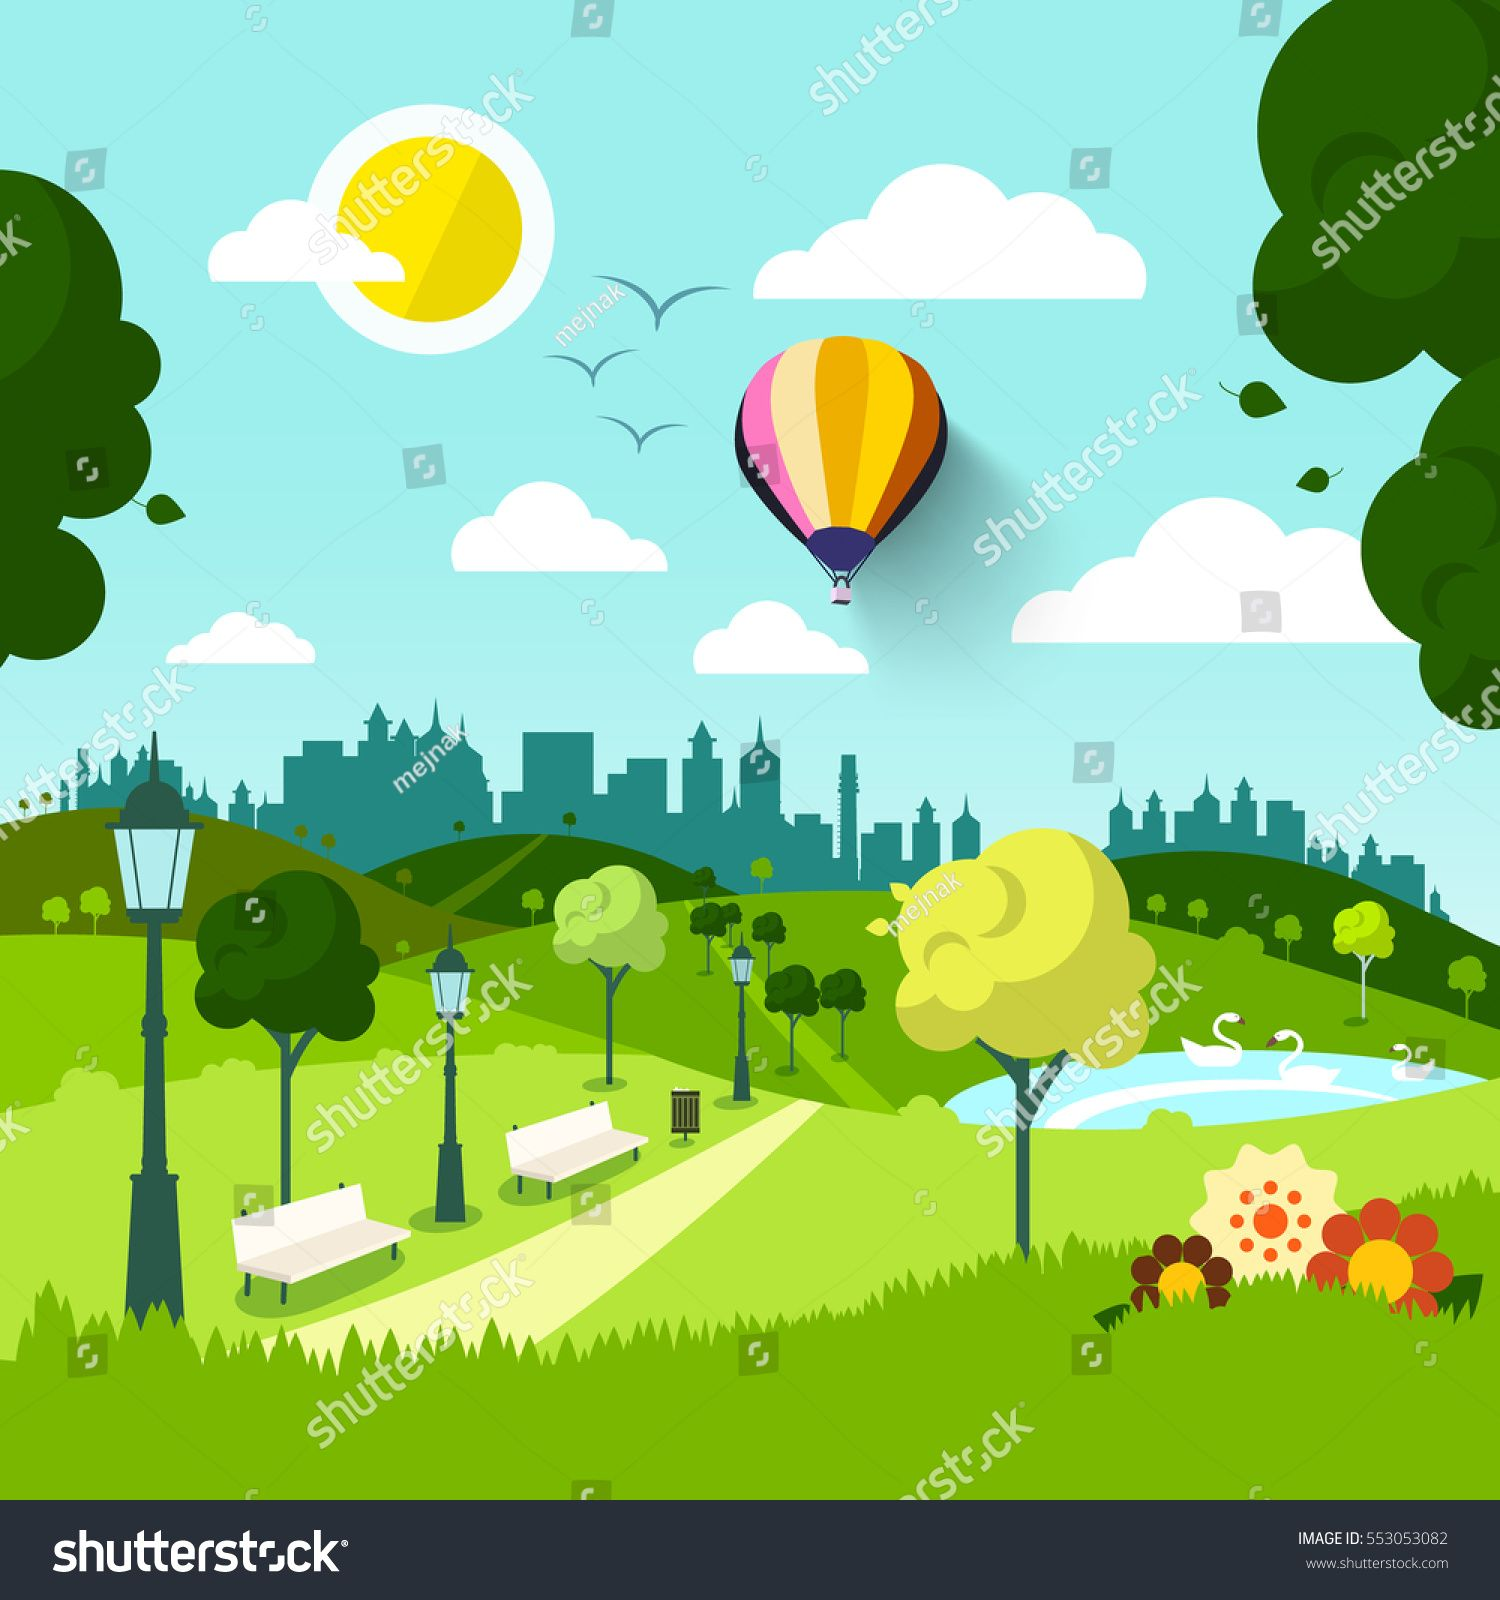 City Park Vector Nature Landscape Abstract Green Natural Scene With Flowers Sunny Day In Town Sponsored Sponsored Na Abstract City Park City Abstract